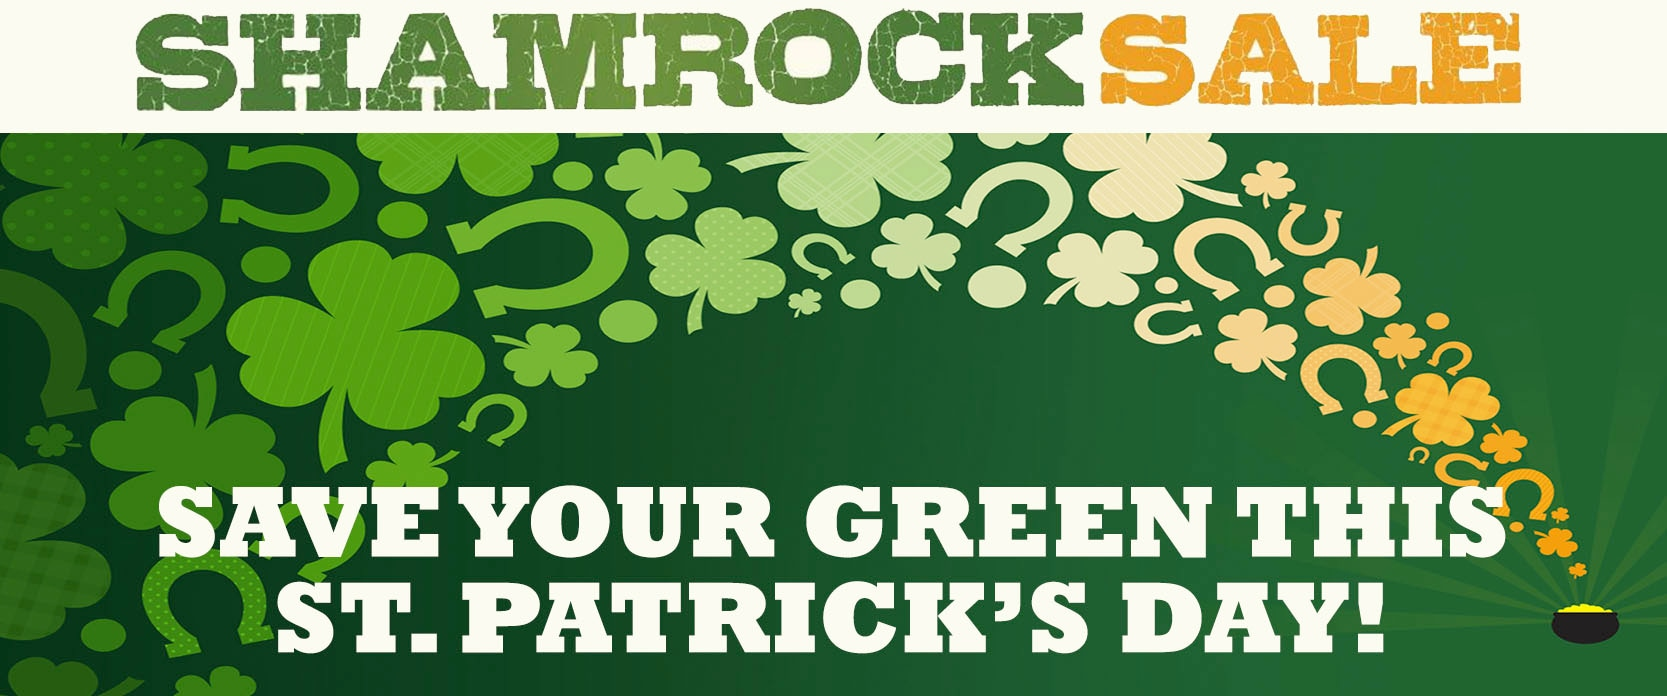 Porsche of Greenville St. Patrick's Day Deals